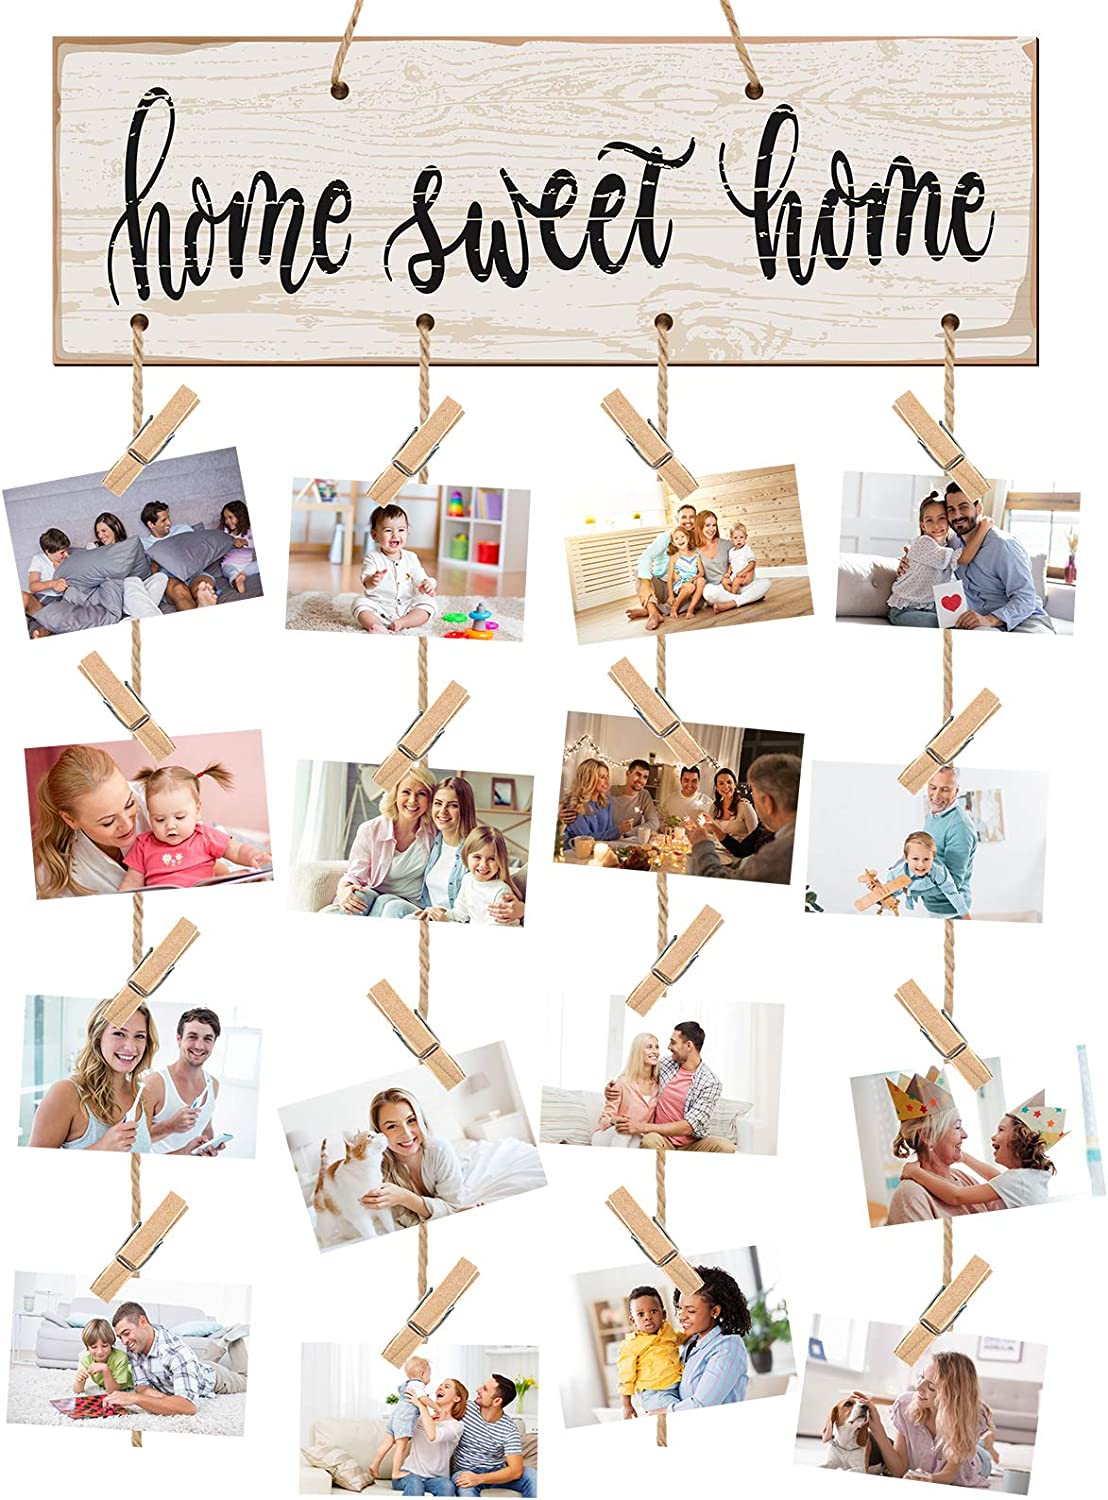 Jetec Home Sweet Home Decoration Photo Holder Home Decor Hanging Picture Holder Wedding Wooden Photo Display Hanger with 16 Pieces Clips for Rustic Home Decor Wall Home Office Room Decoration